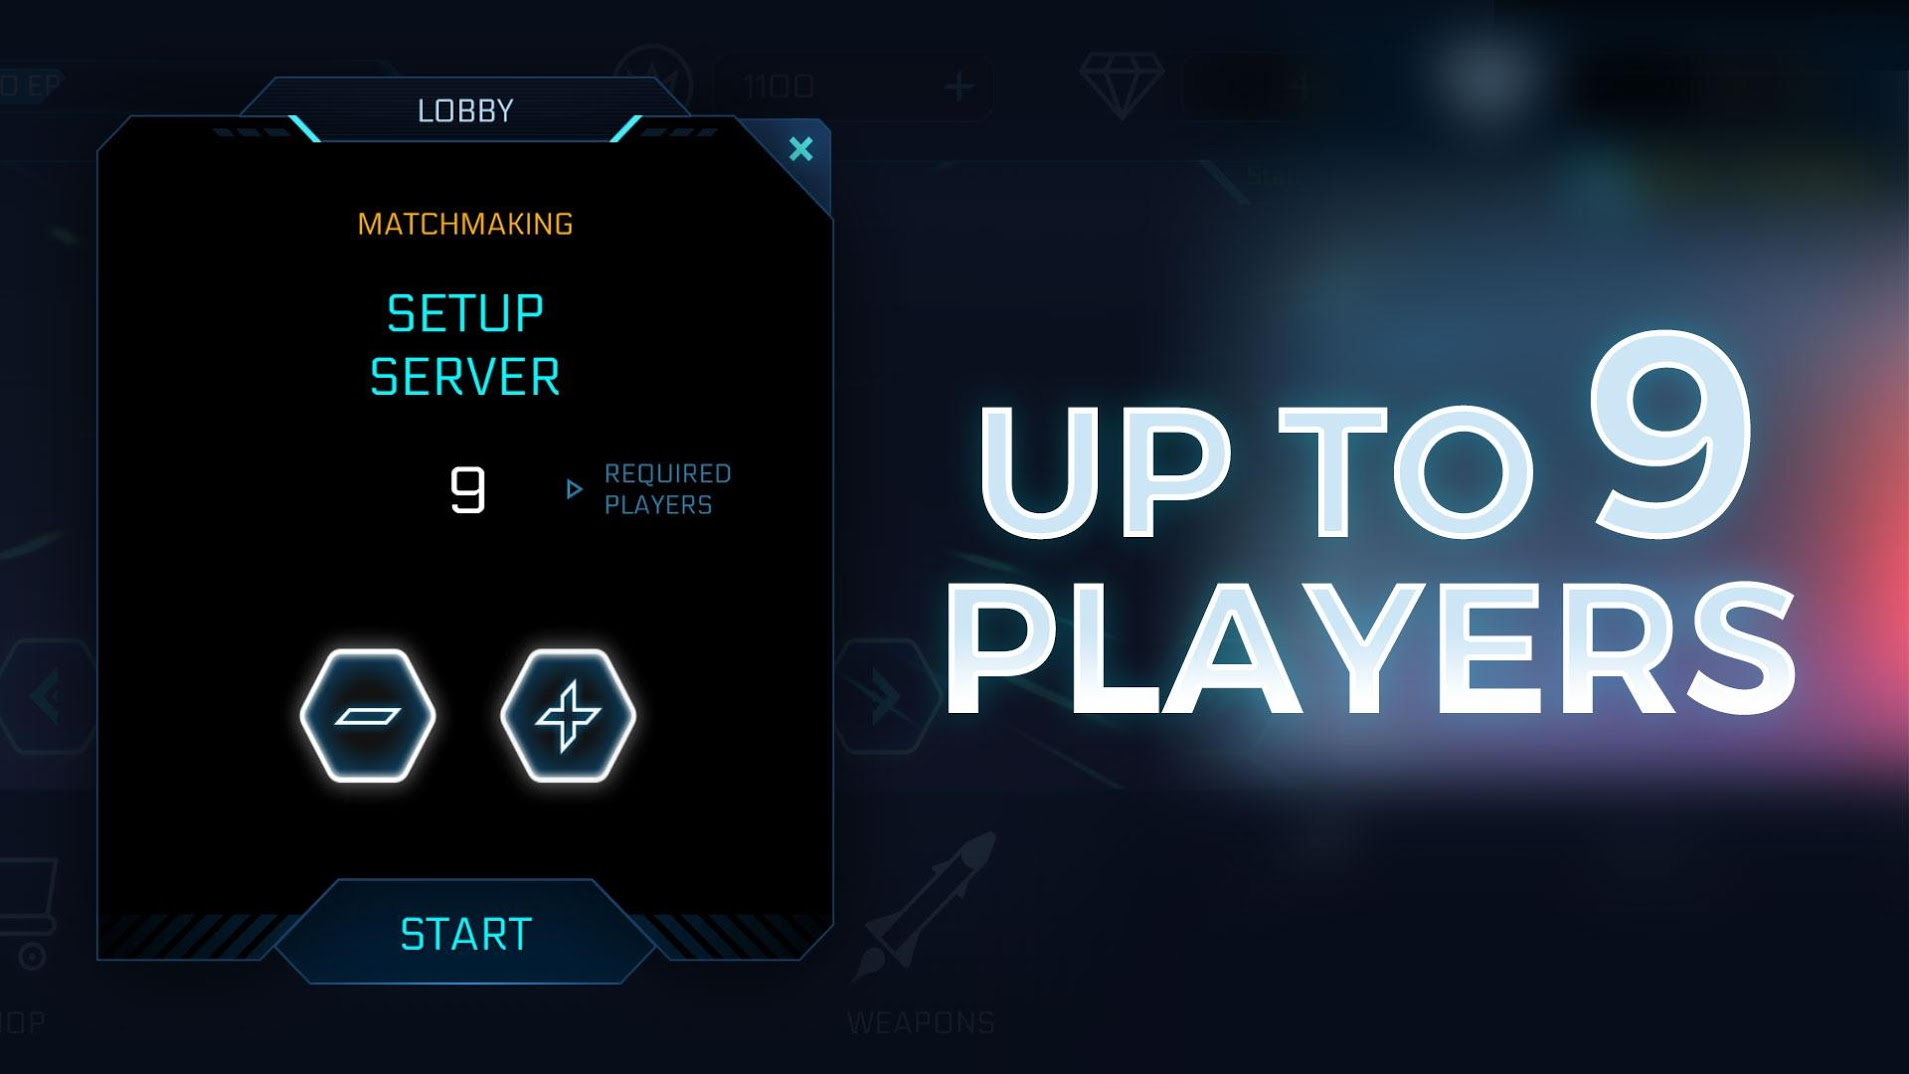 Planet Breaker: Mobile matchmakeing with up to 9 players